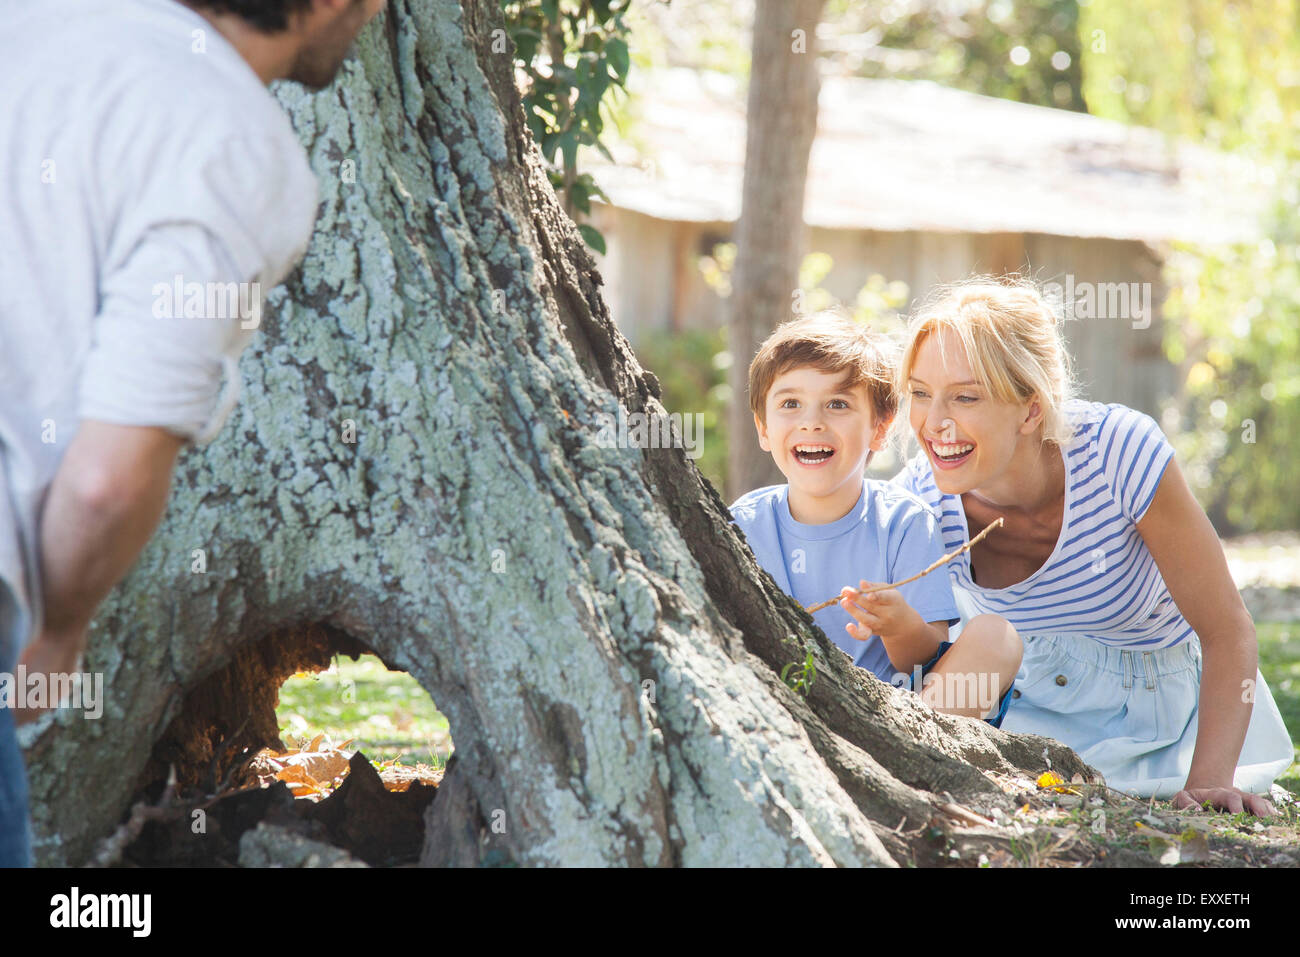 Young boy and mother hiding behind tree, playing hide-and-seek - Stock Image